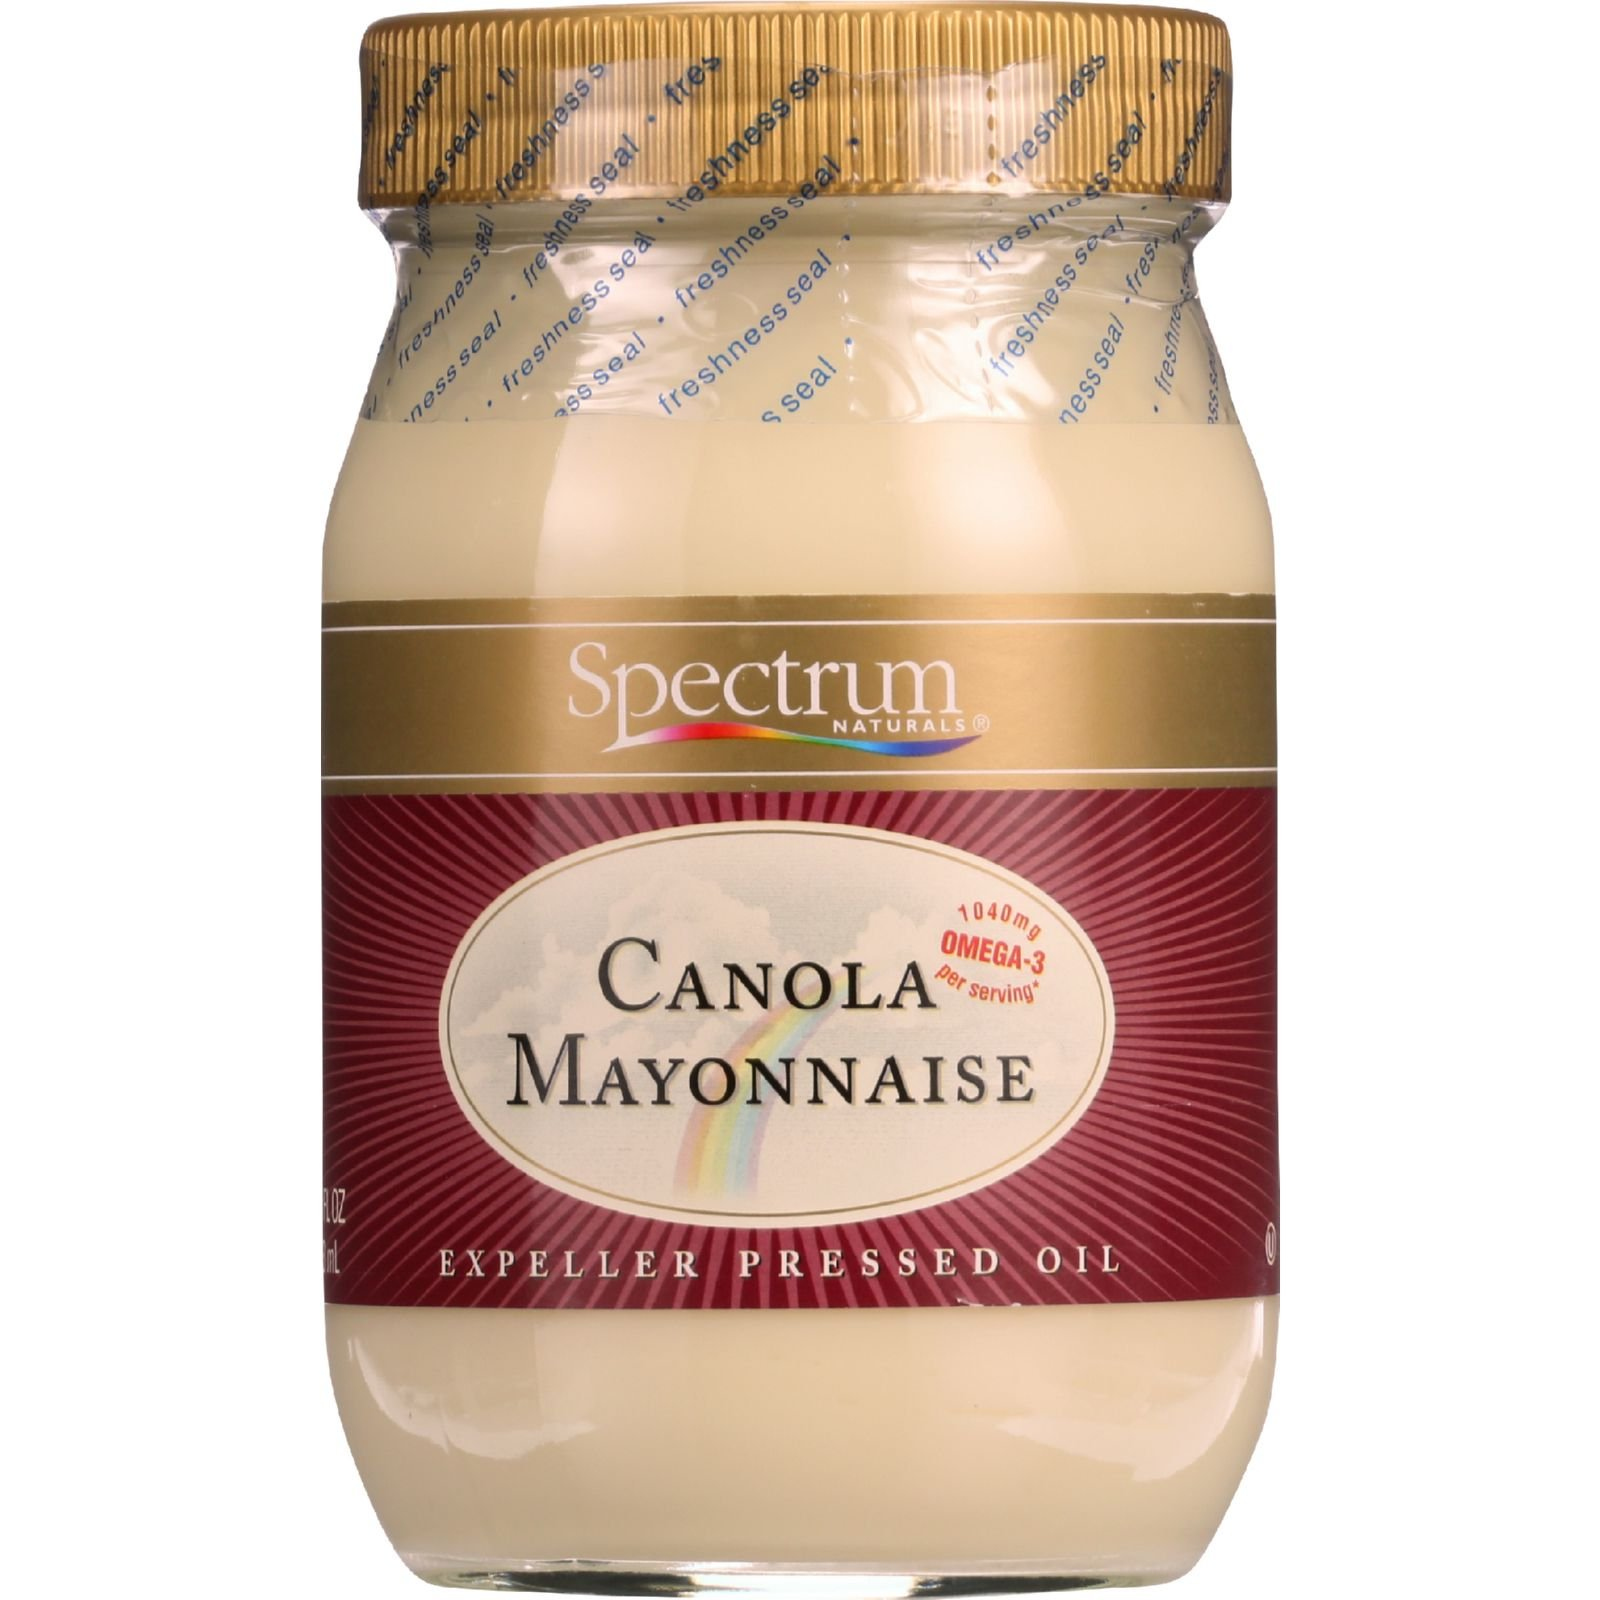 Spectrum Naturals Mayonnaise - Canola - 16 oz - 1 each (Pack of 3)